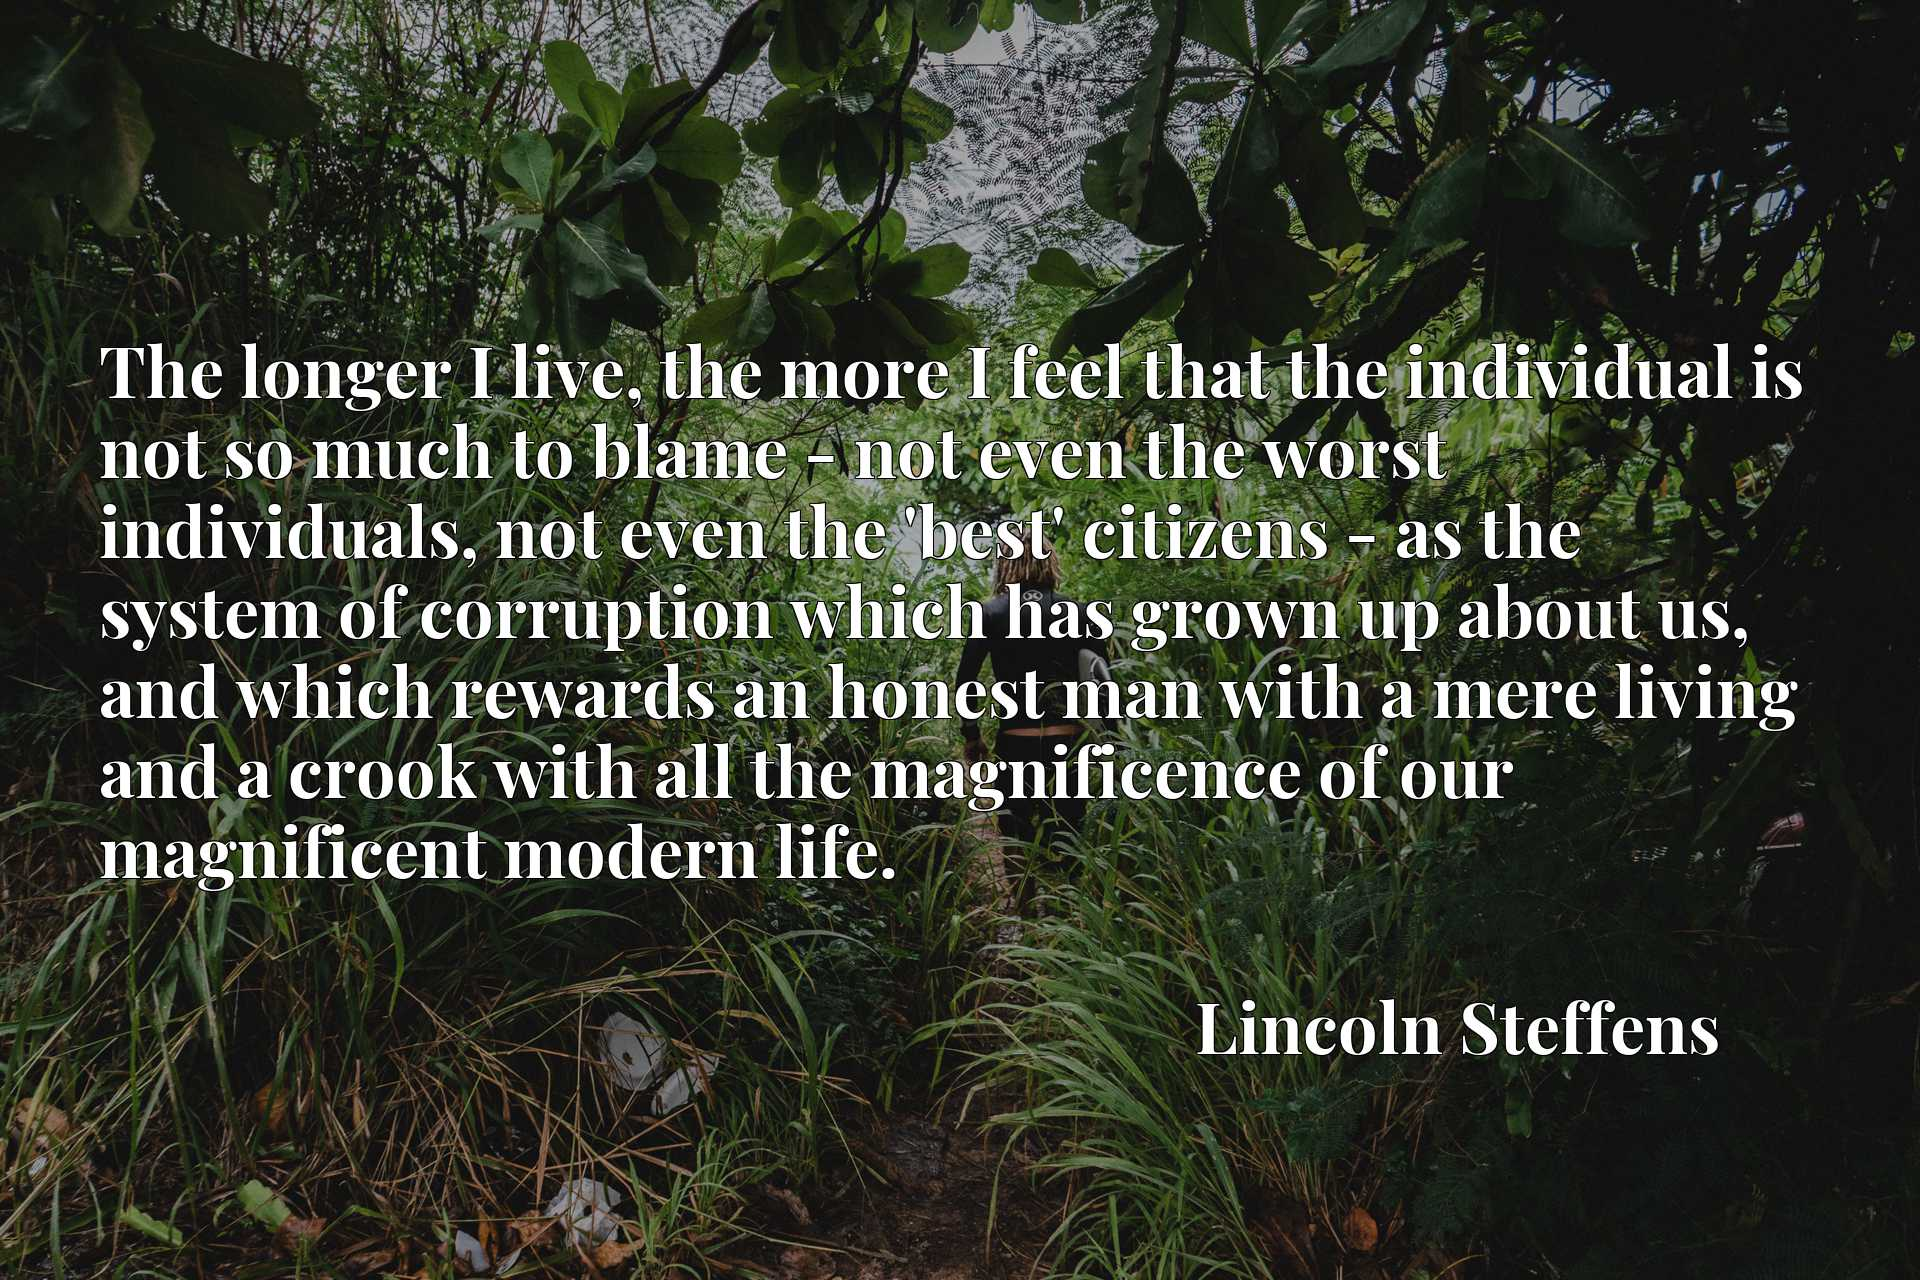 The longer I live, the more I feel that the individual is not so much to blame - not even the worst individuals, not even the 'best' citizens - as the system of corruption which has grown up about us, and which rewards an honest man with a mere living and a crook with all the magnificence of our magnificent modern life.